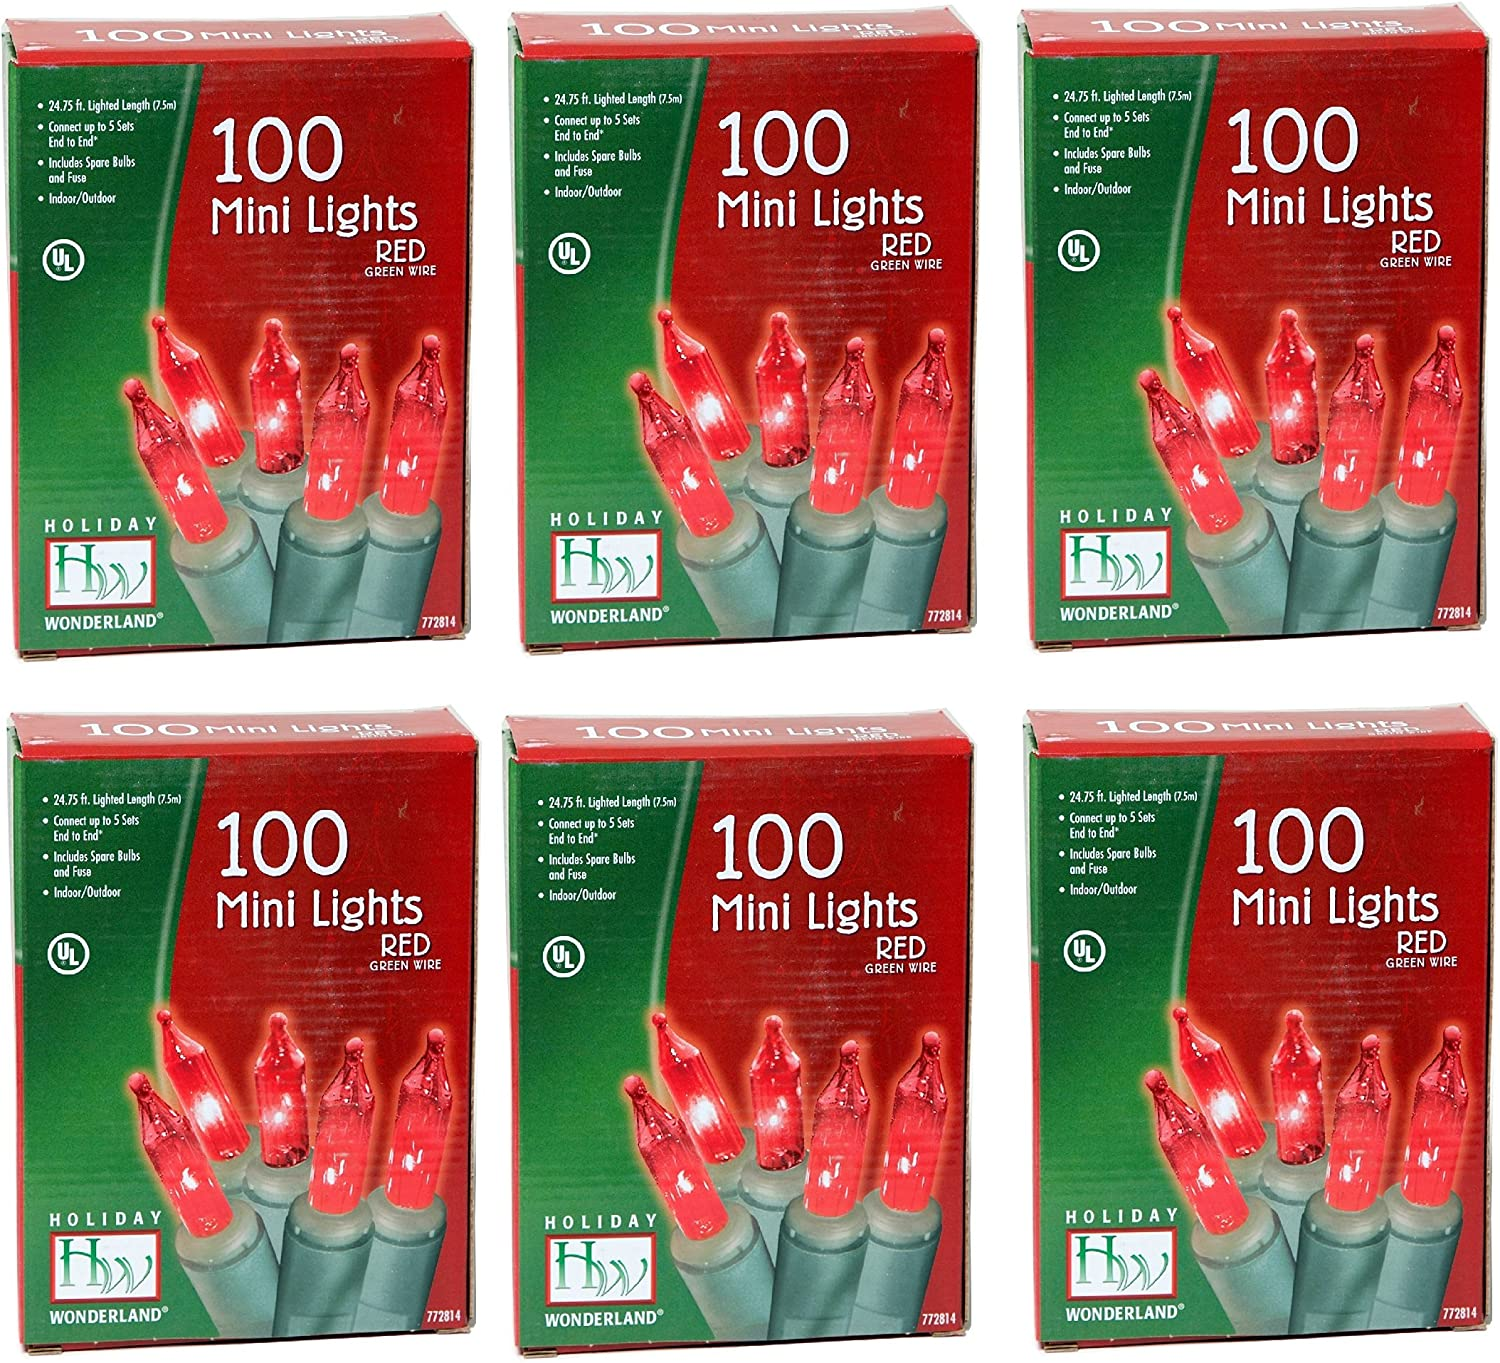 Noma/Inliten Holiday Wonderland's 100-Count Red Light Set (Pack of 6)